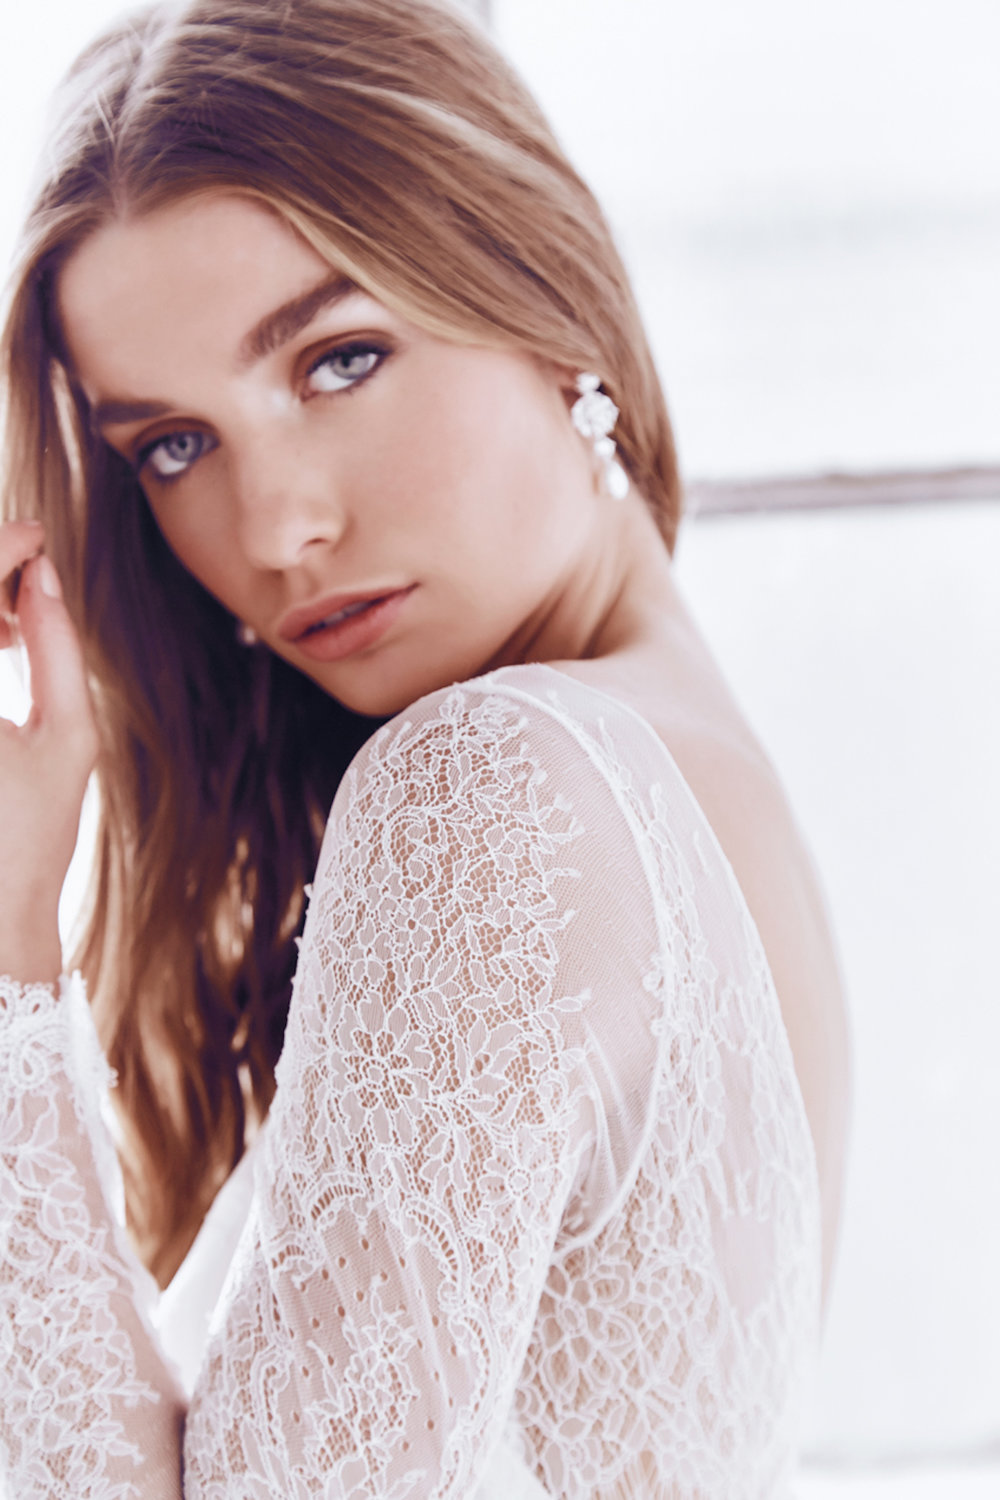 Anna Campbell Milla Dress | Vintage-Inspired Long Sleeve Lace Wedding Dress